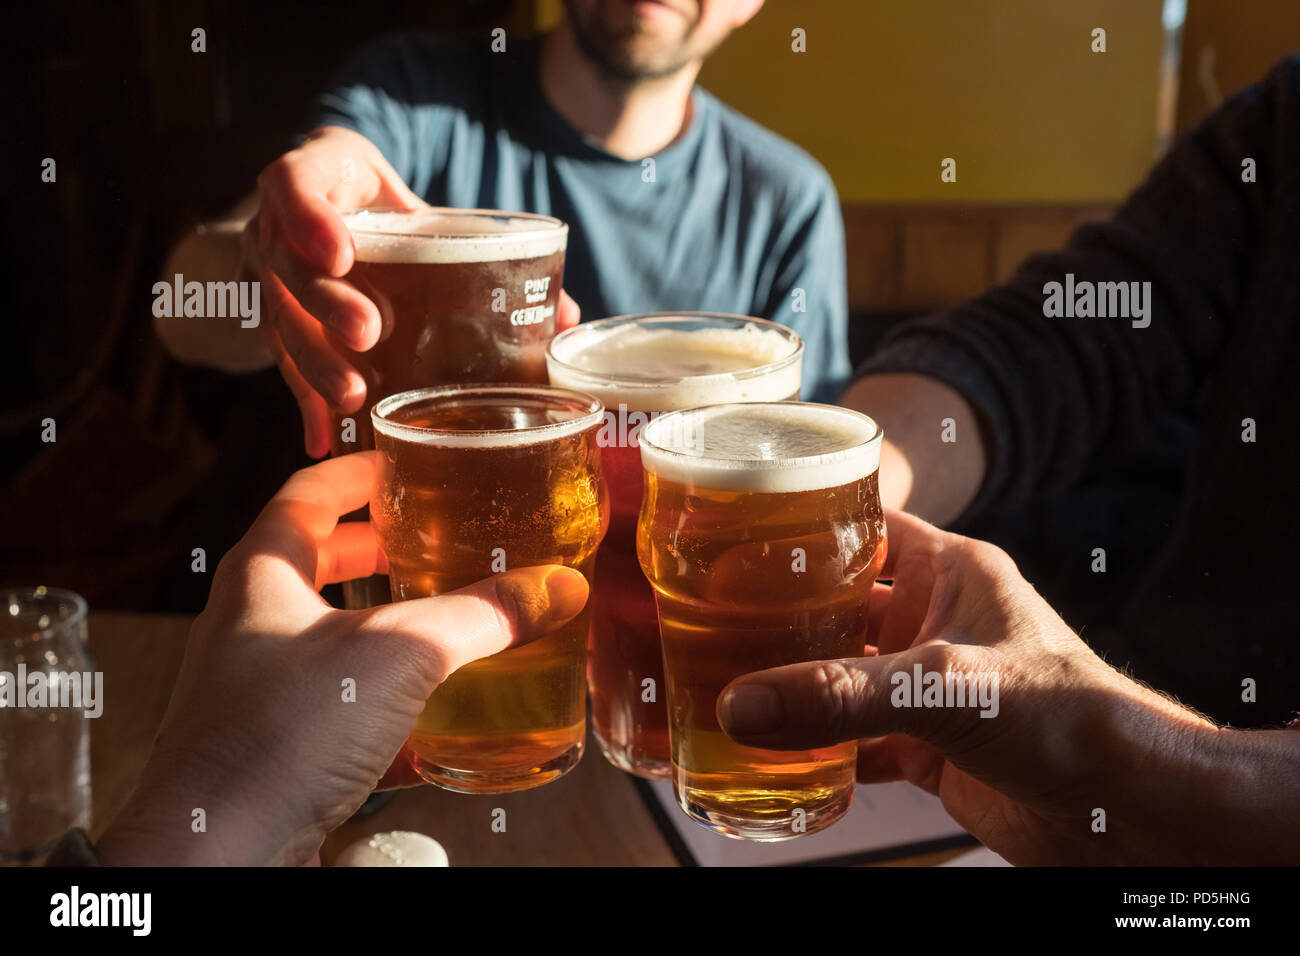 A party of four clink glasses (2 pints of cask ale and 2 half pints of cider) and say cheers at The Black Bull Inn in Frosterley, County Durham, UK. Stock Photo